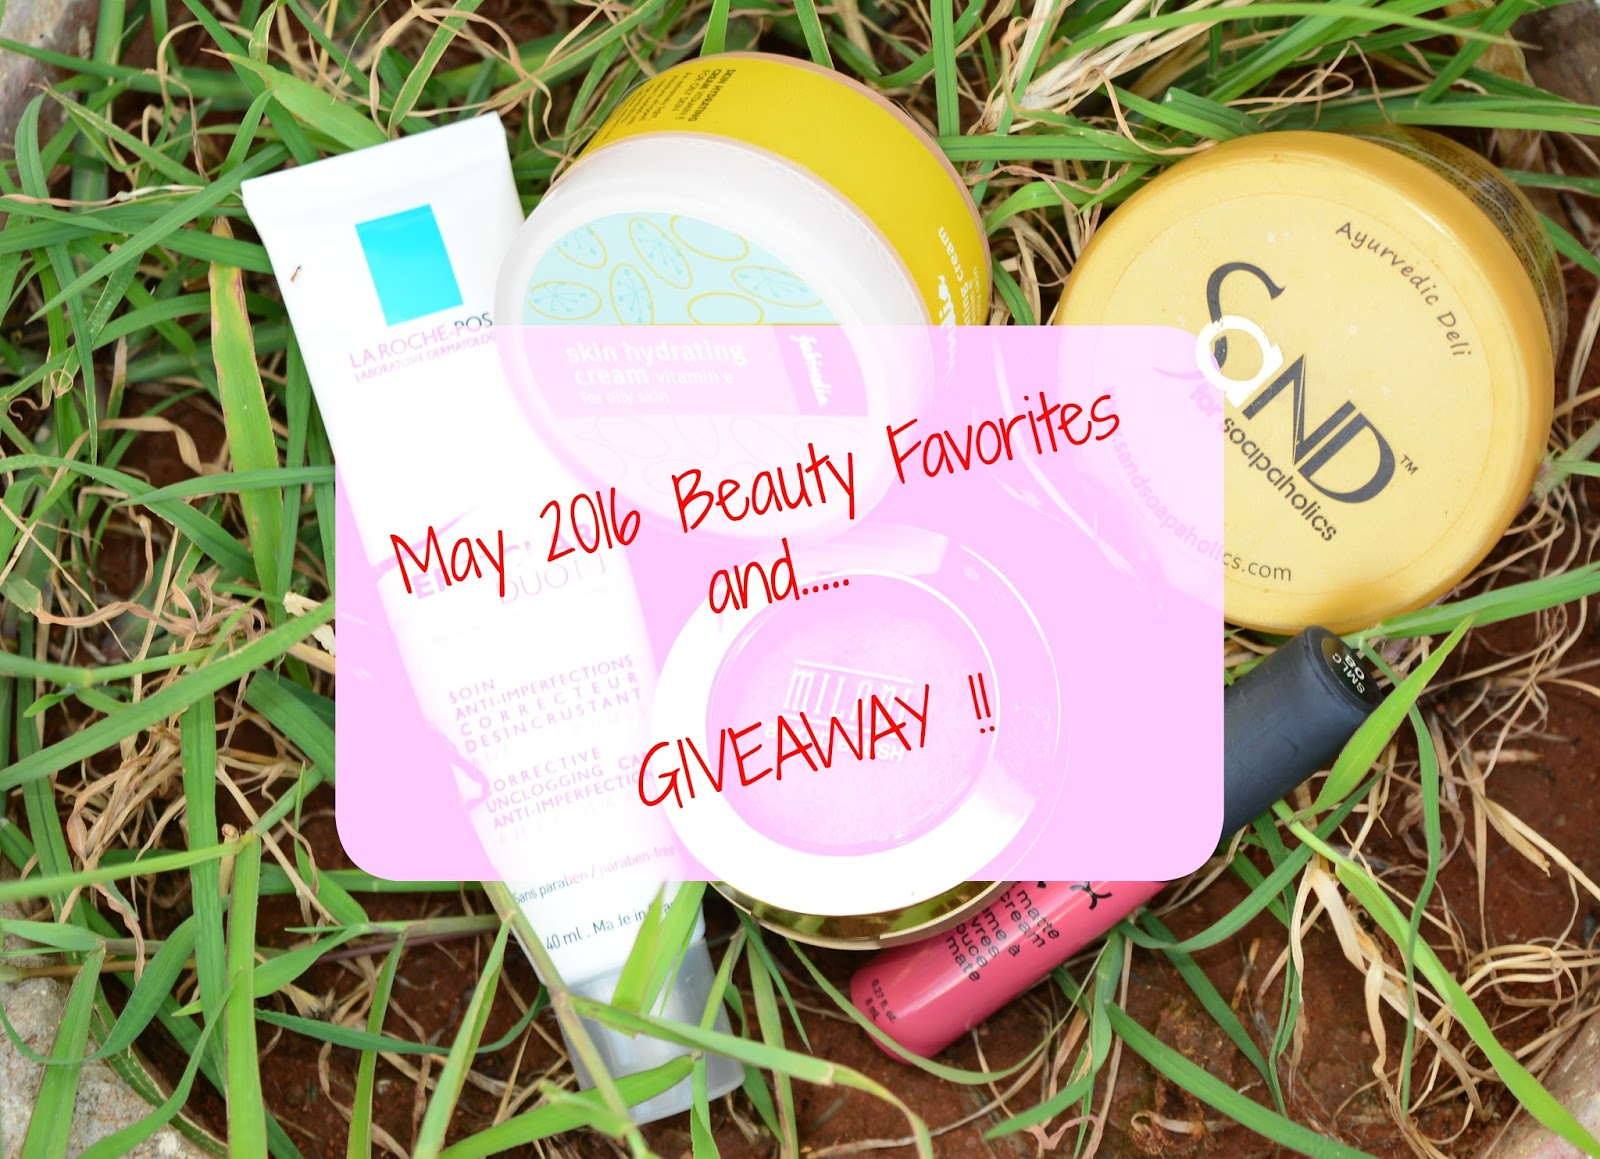 May 2016 Beauty Favorites And...... GIVEAWAY !!